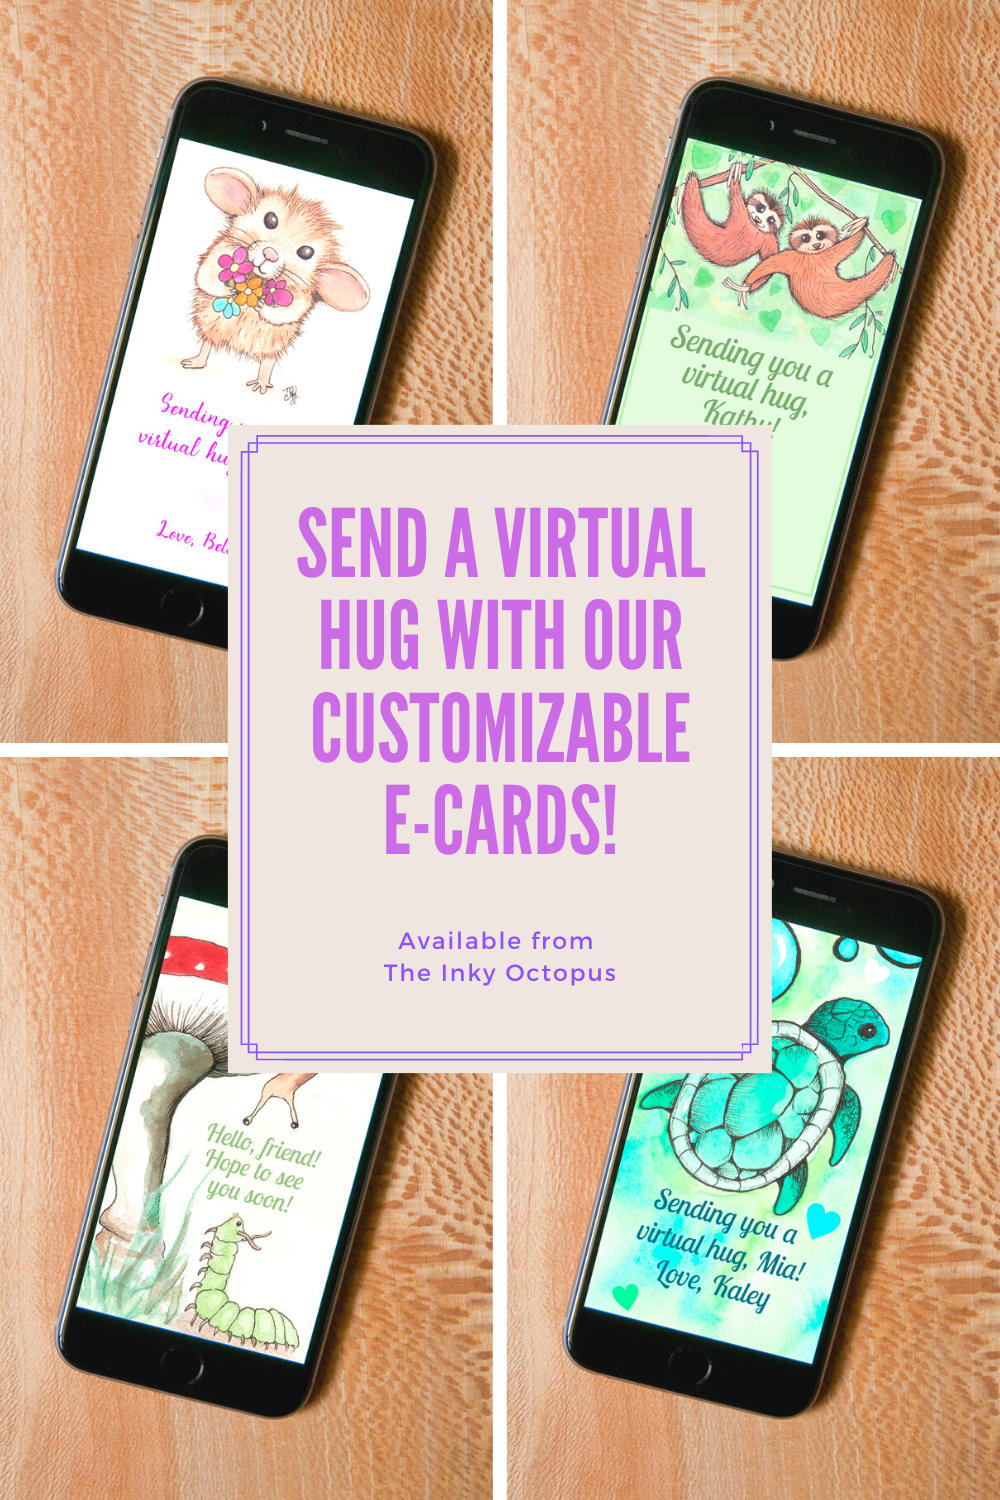 Customizable e-cards by Melissa Rohr